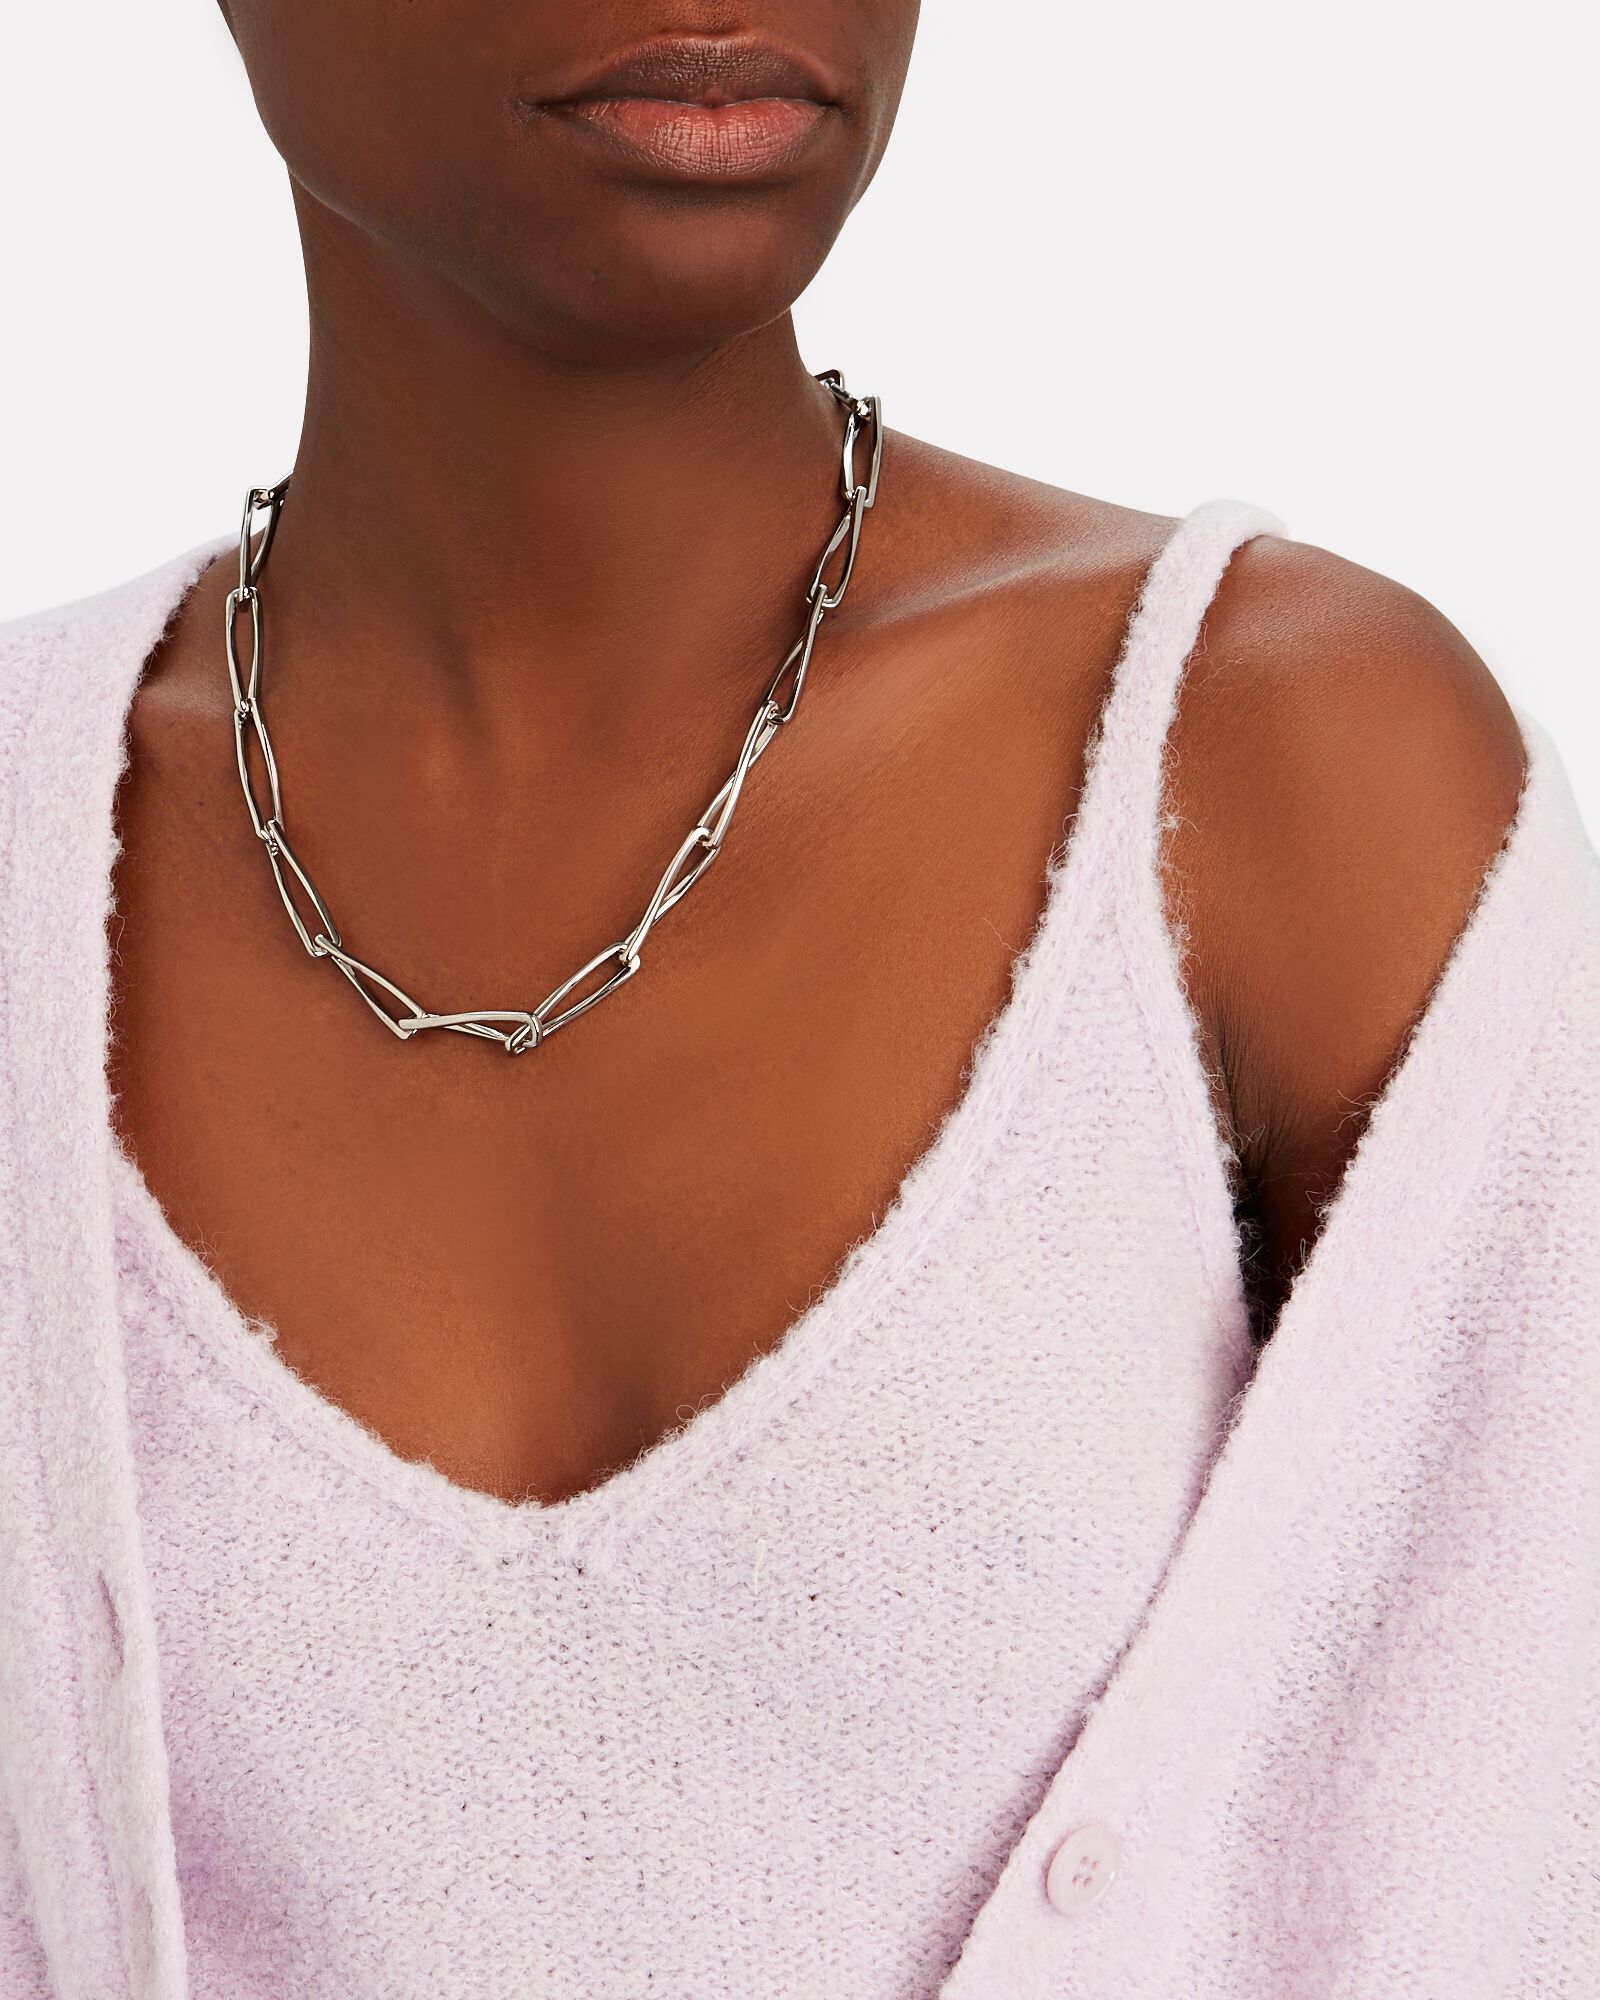 Pirouette Chain-Link Necklace, SILVER, hi-res